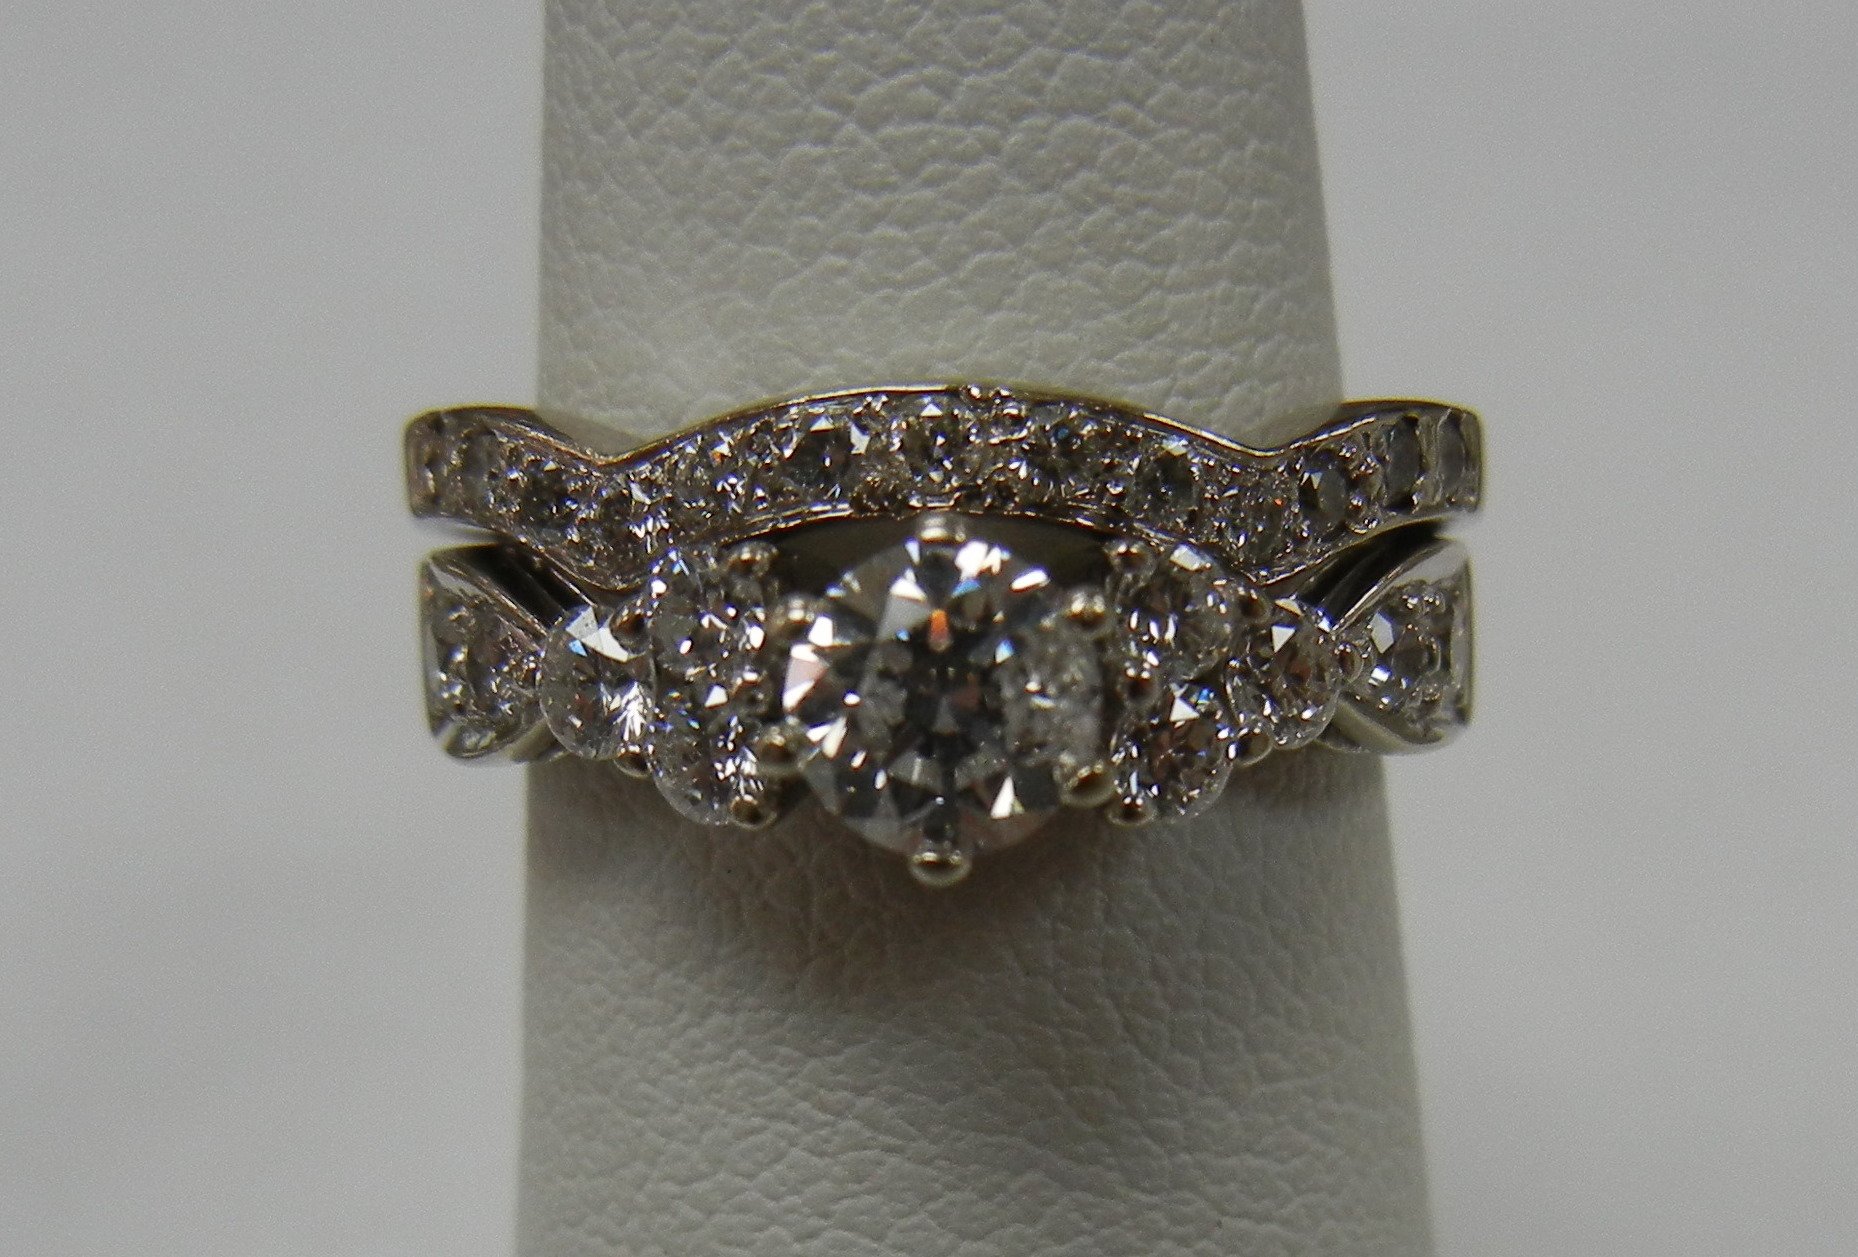 14KT WHITE GOLD WEDDING SET WITH 1/3 CT DIAMOND IN CENTER - SIZE 4.5